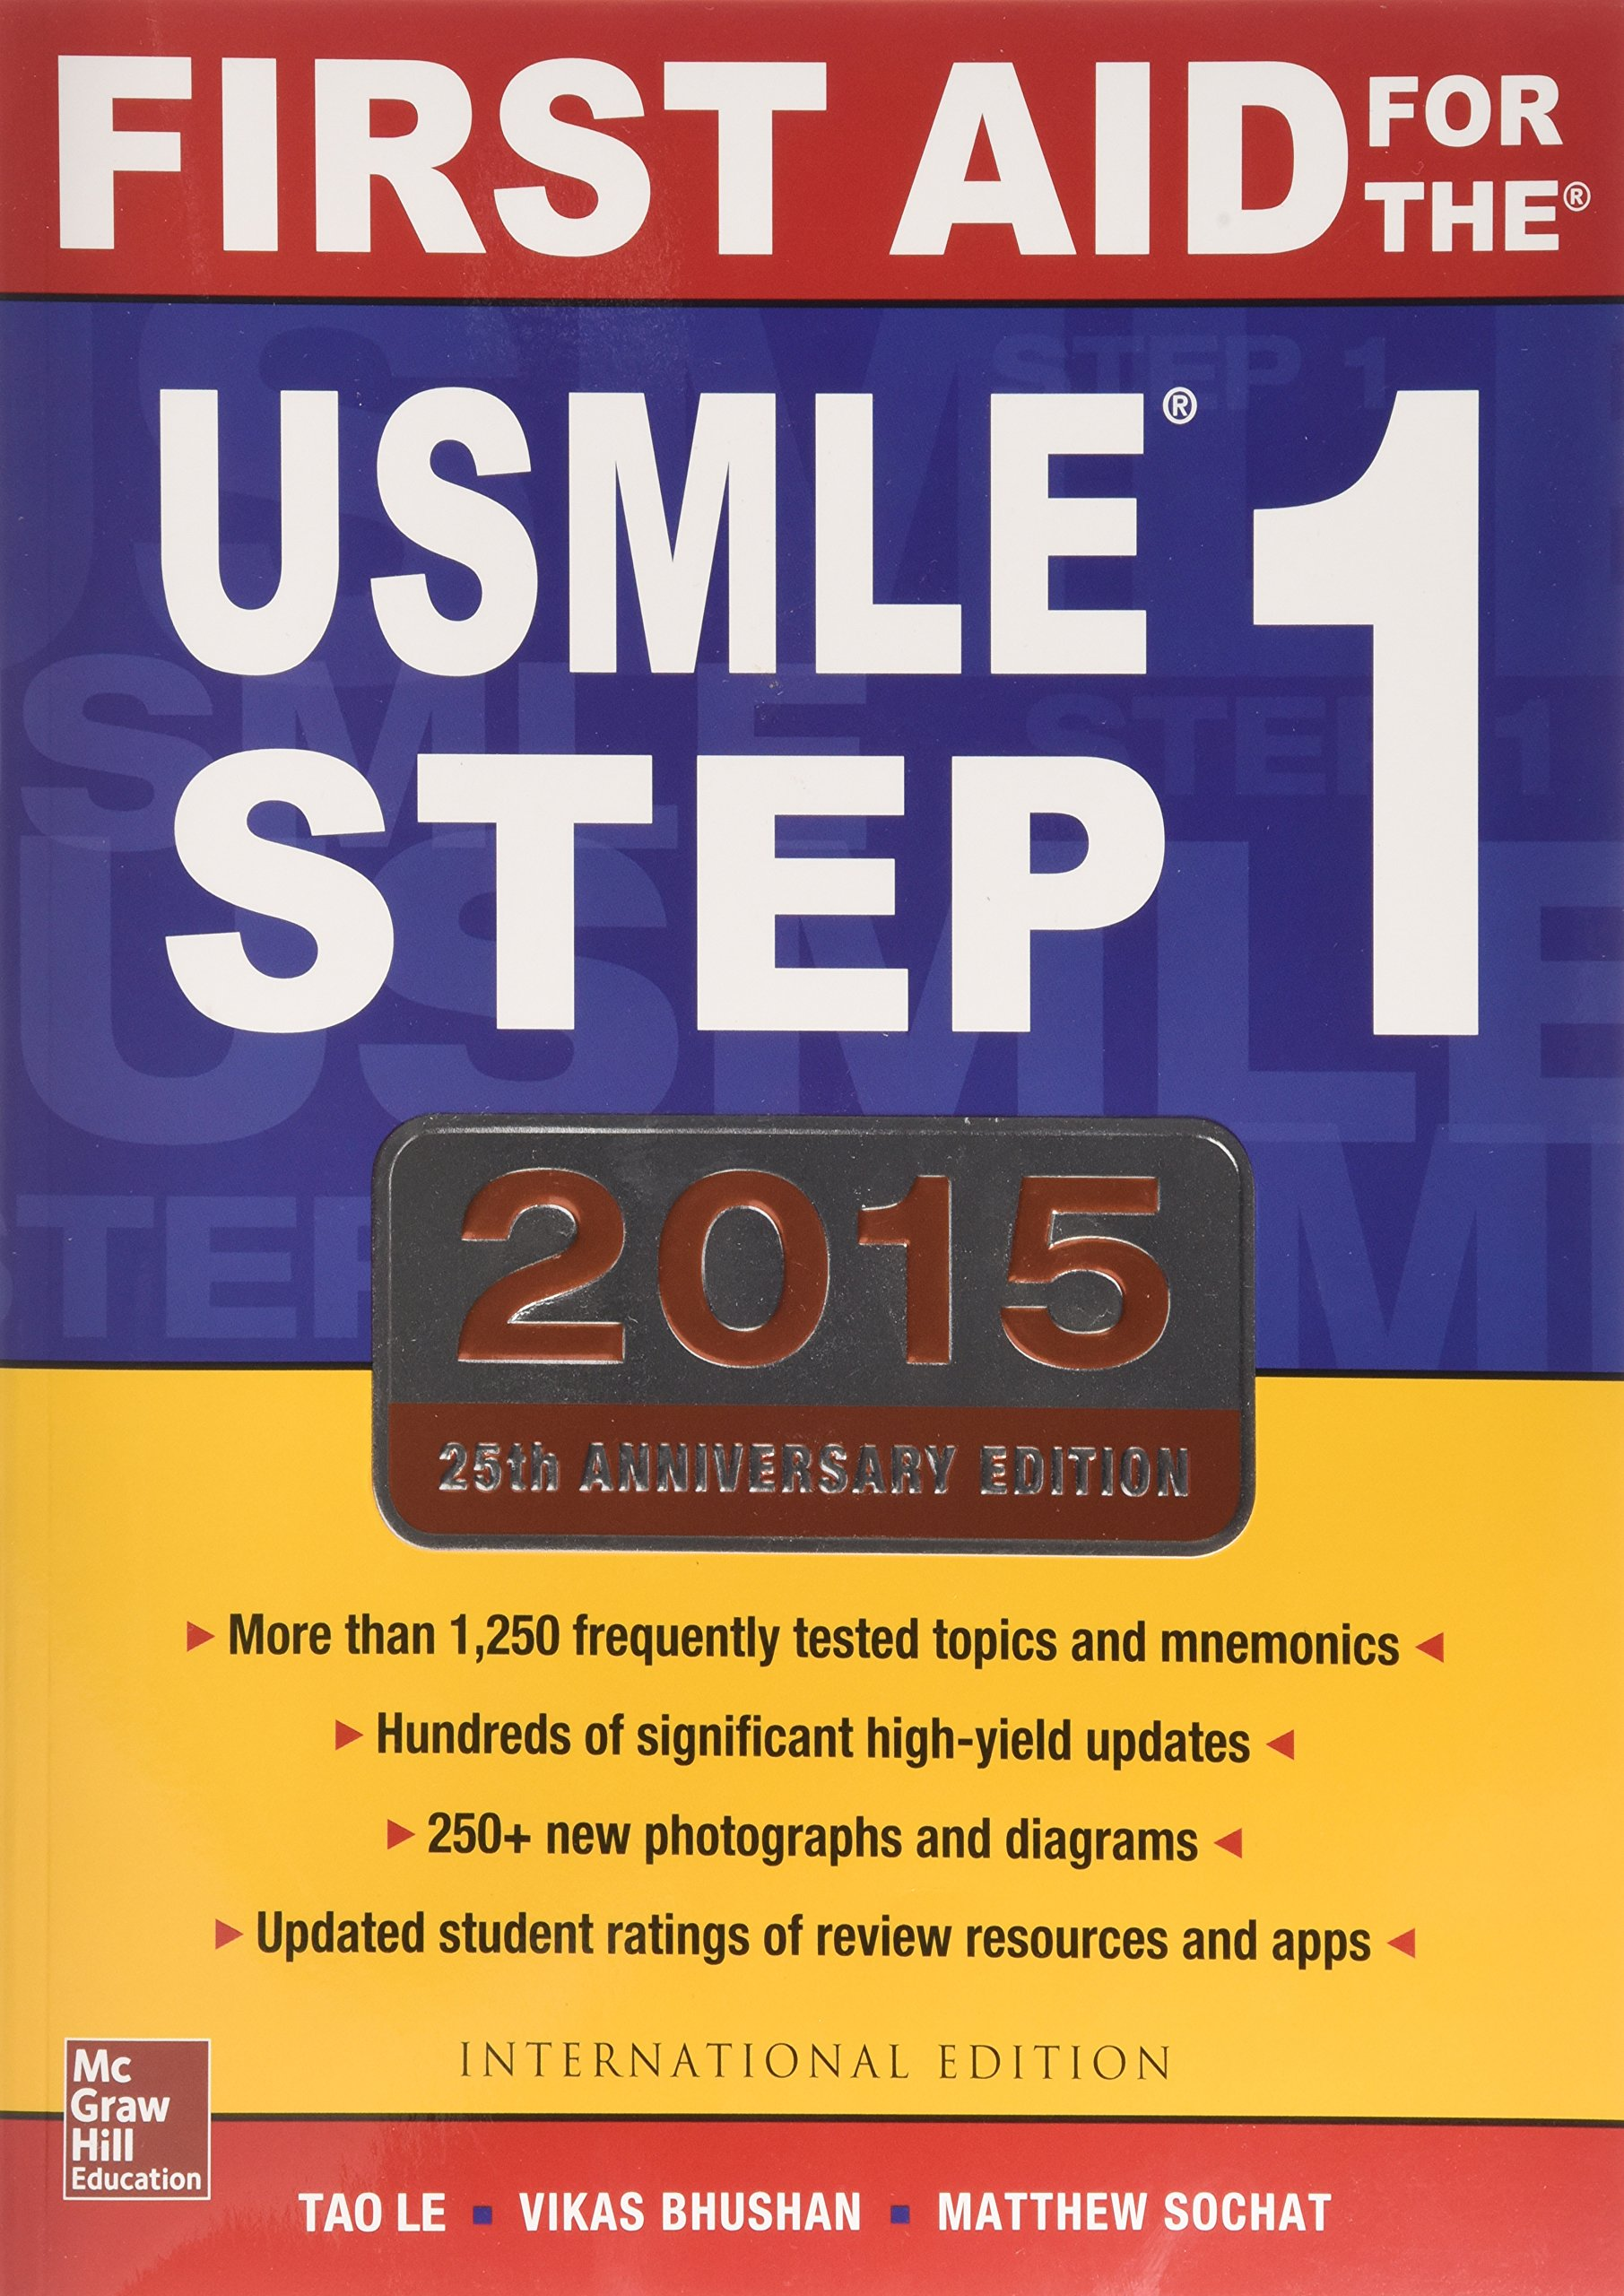 First aid for the usmle step 1 2015 tao le vikas bhushan first aid for the usmle step 1 2015 tao le vikas bhushan 9781259252914 amazon books ccuart Gallery